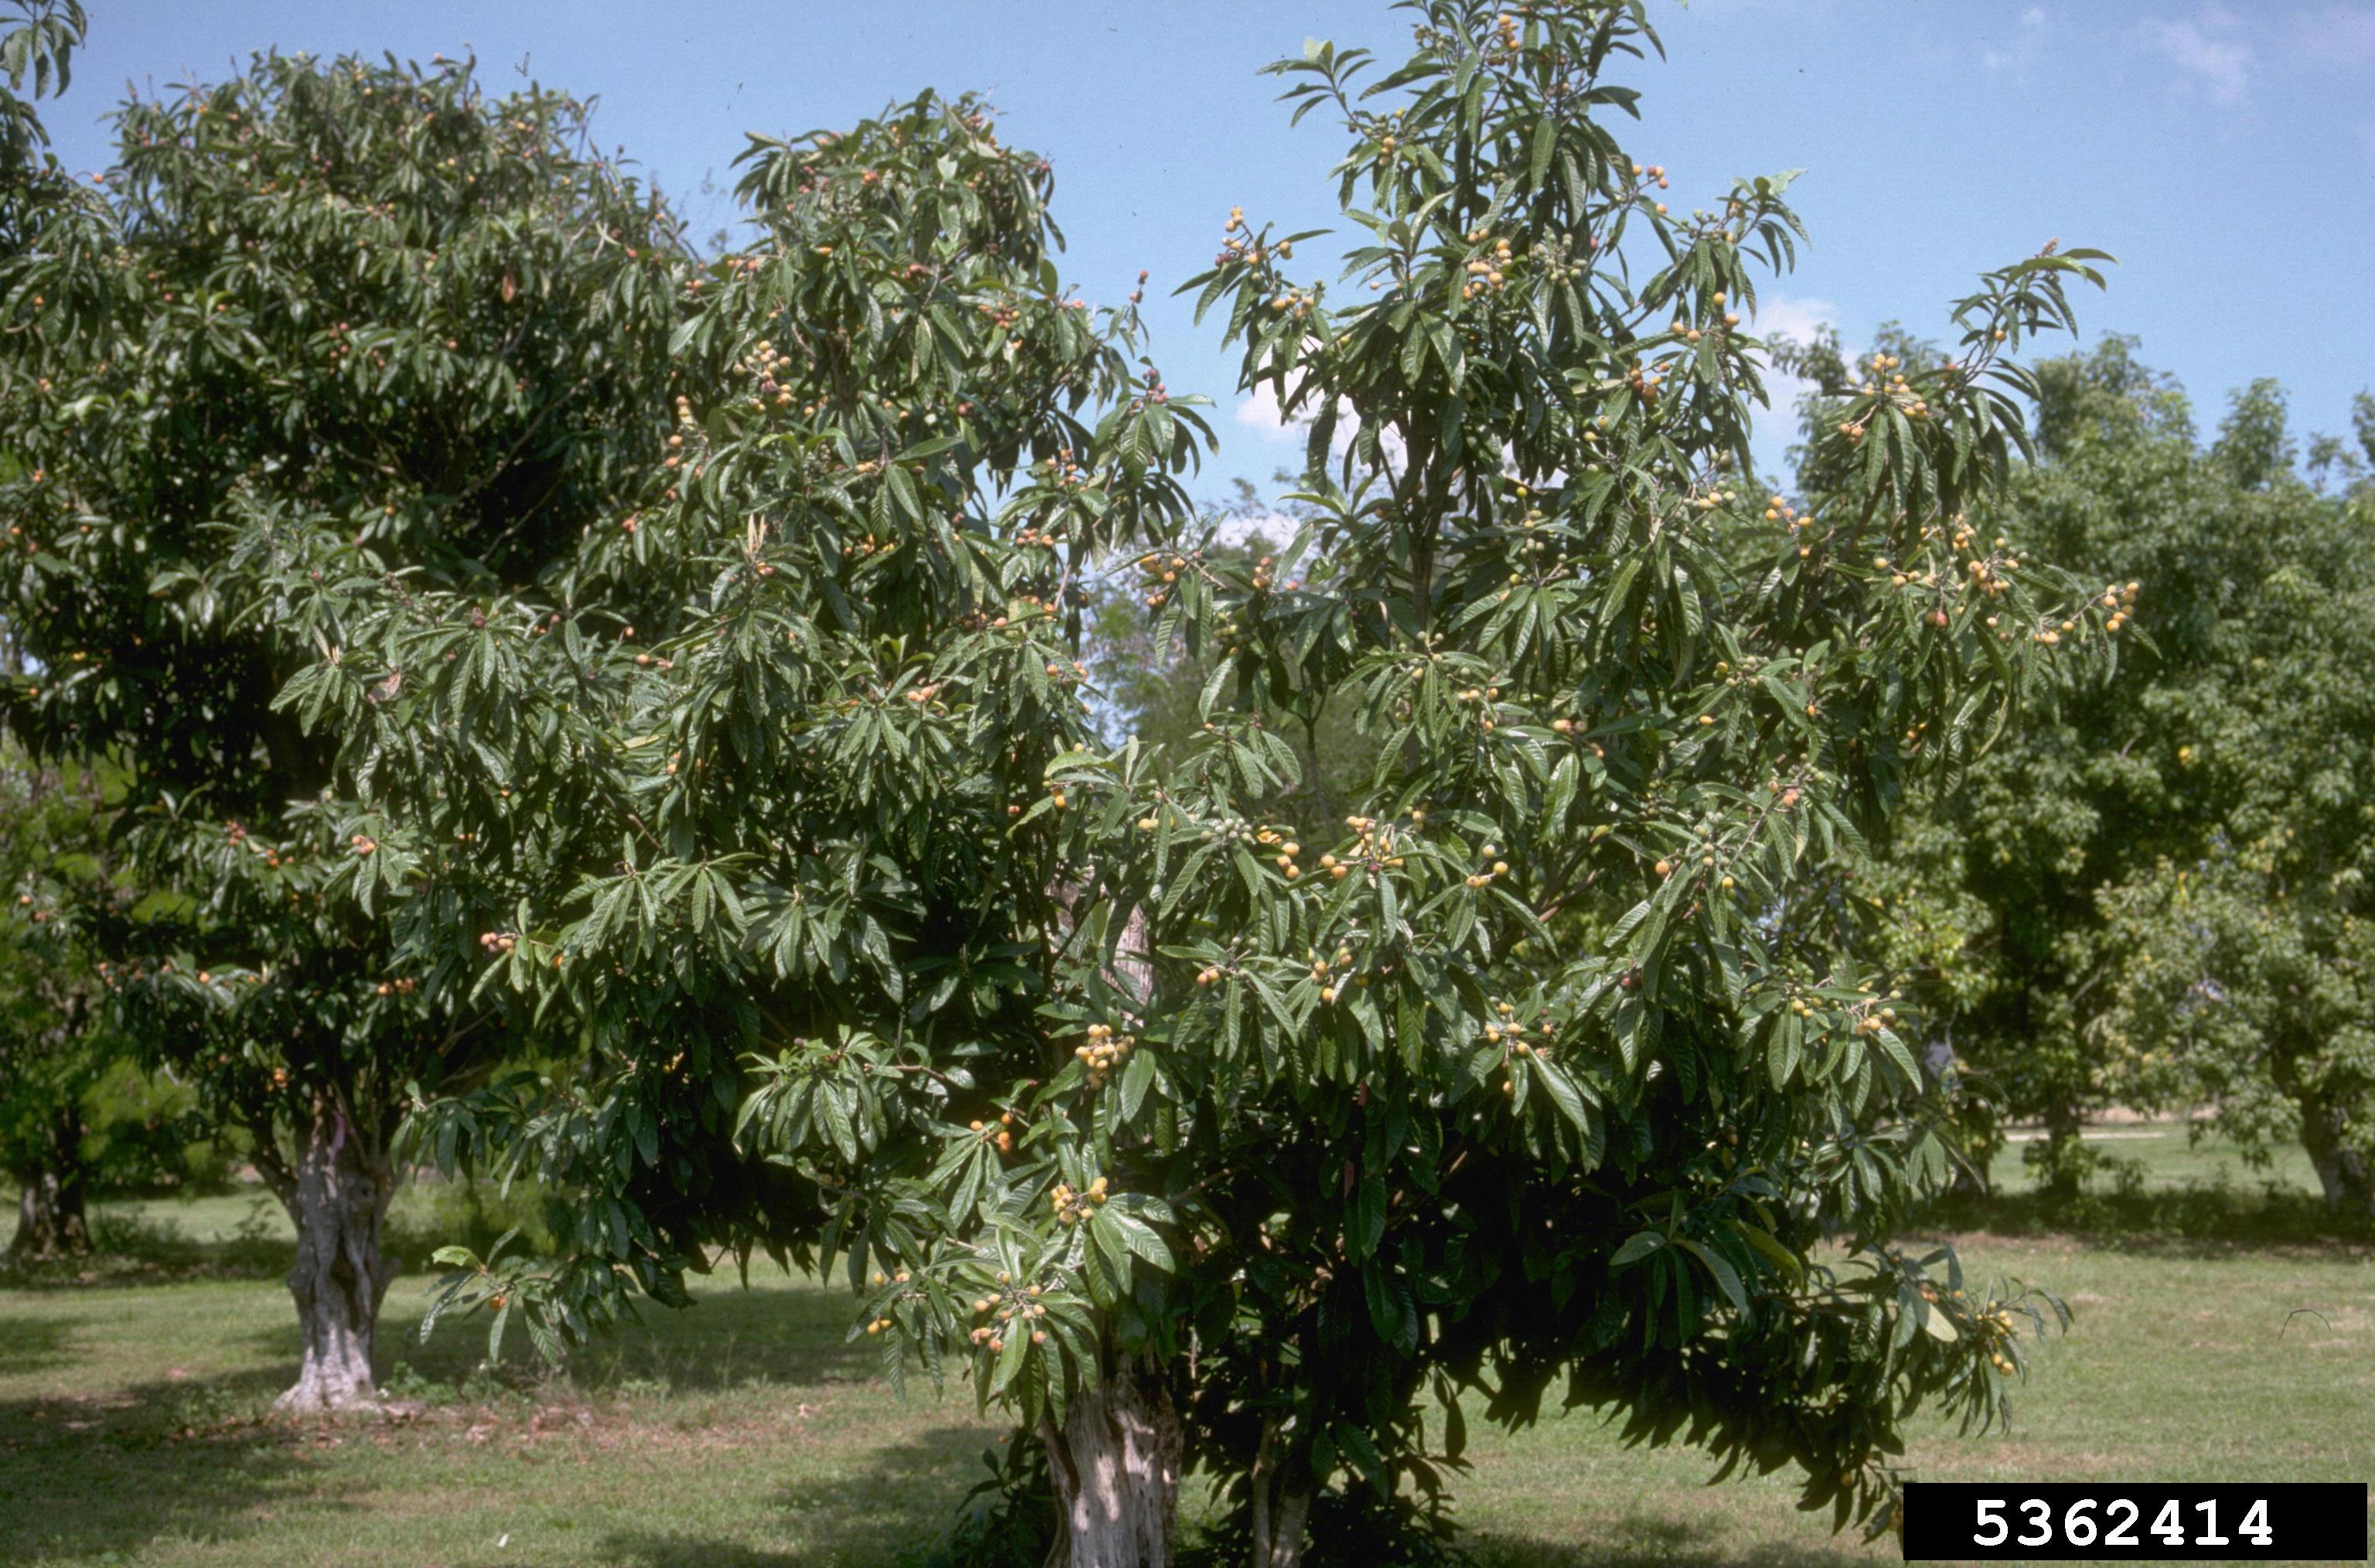 The loquat is a tropical evergreen shrub or tree. The plant usually does not fruit in NC due to its cold sensitivity. The tree itself can survive in temps down to about 10 degrees F. (Credit: Howard F. Schwartz, Colorado State University, Bugwood.org)